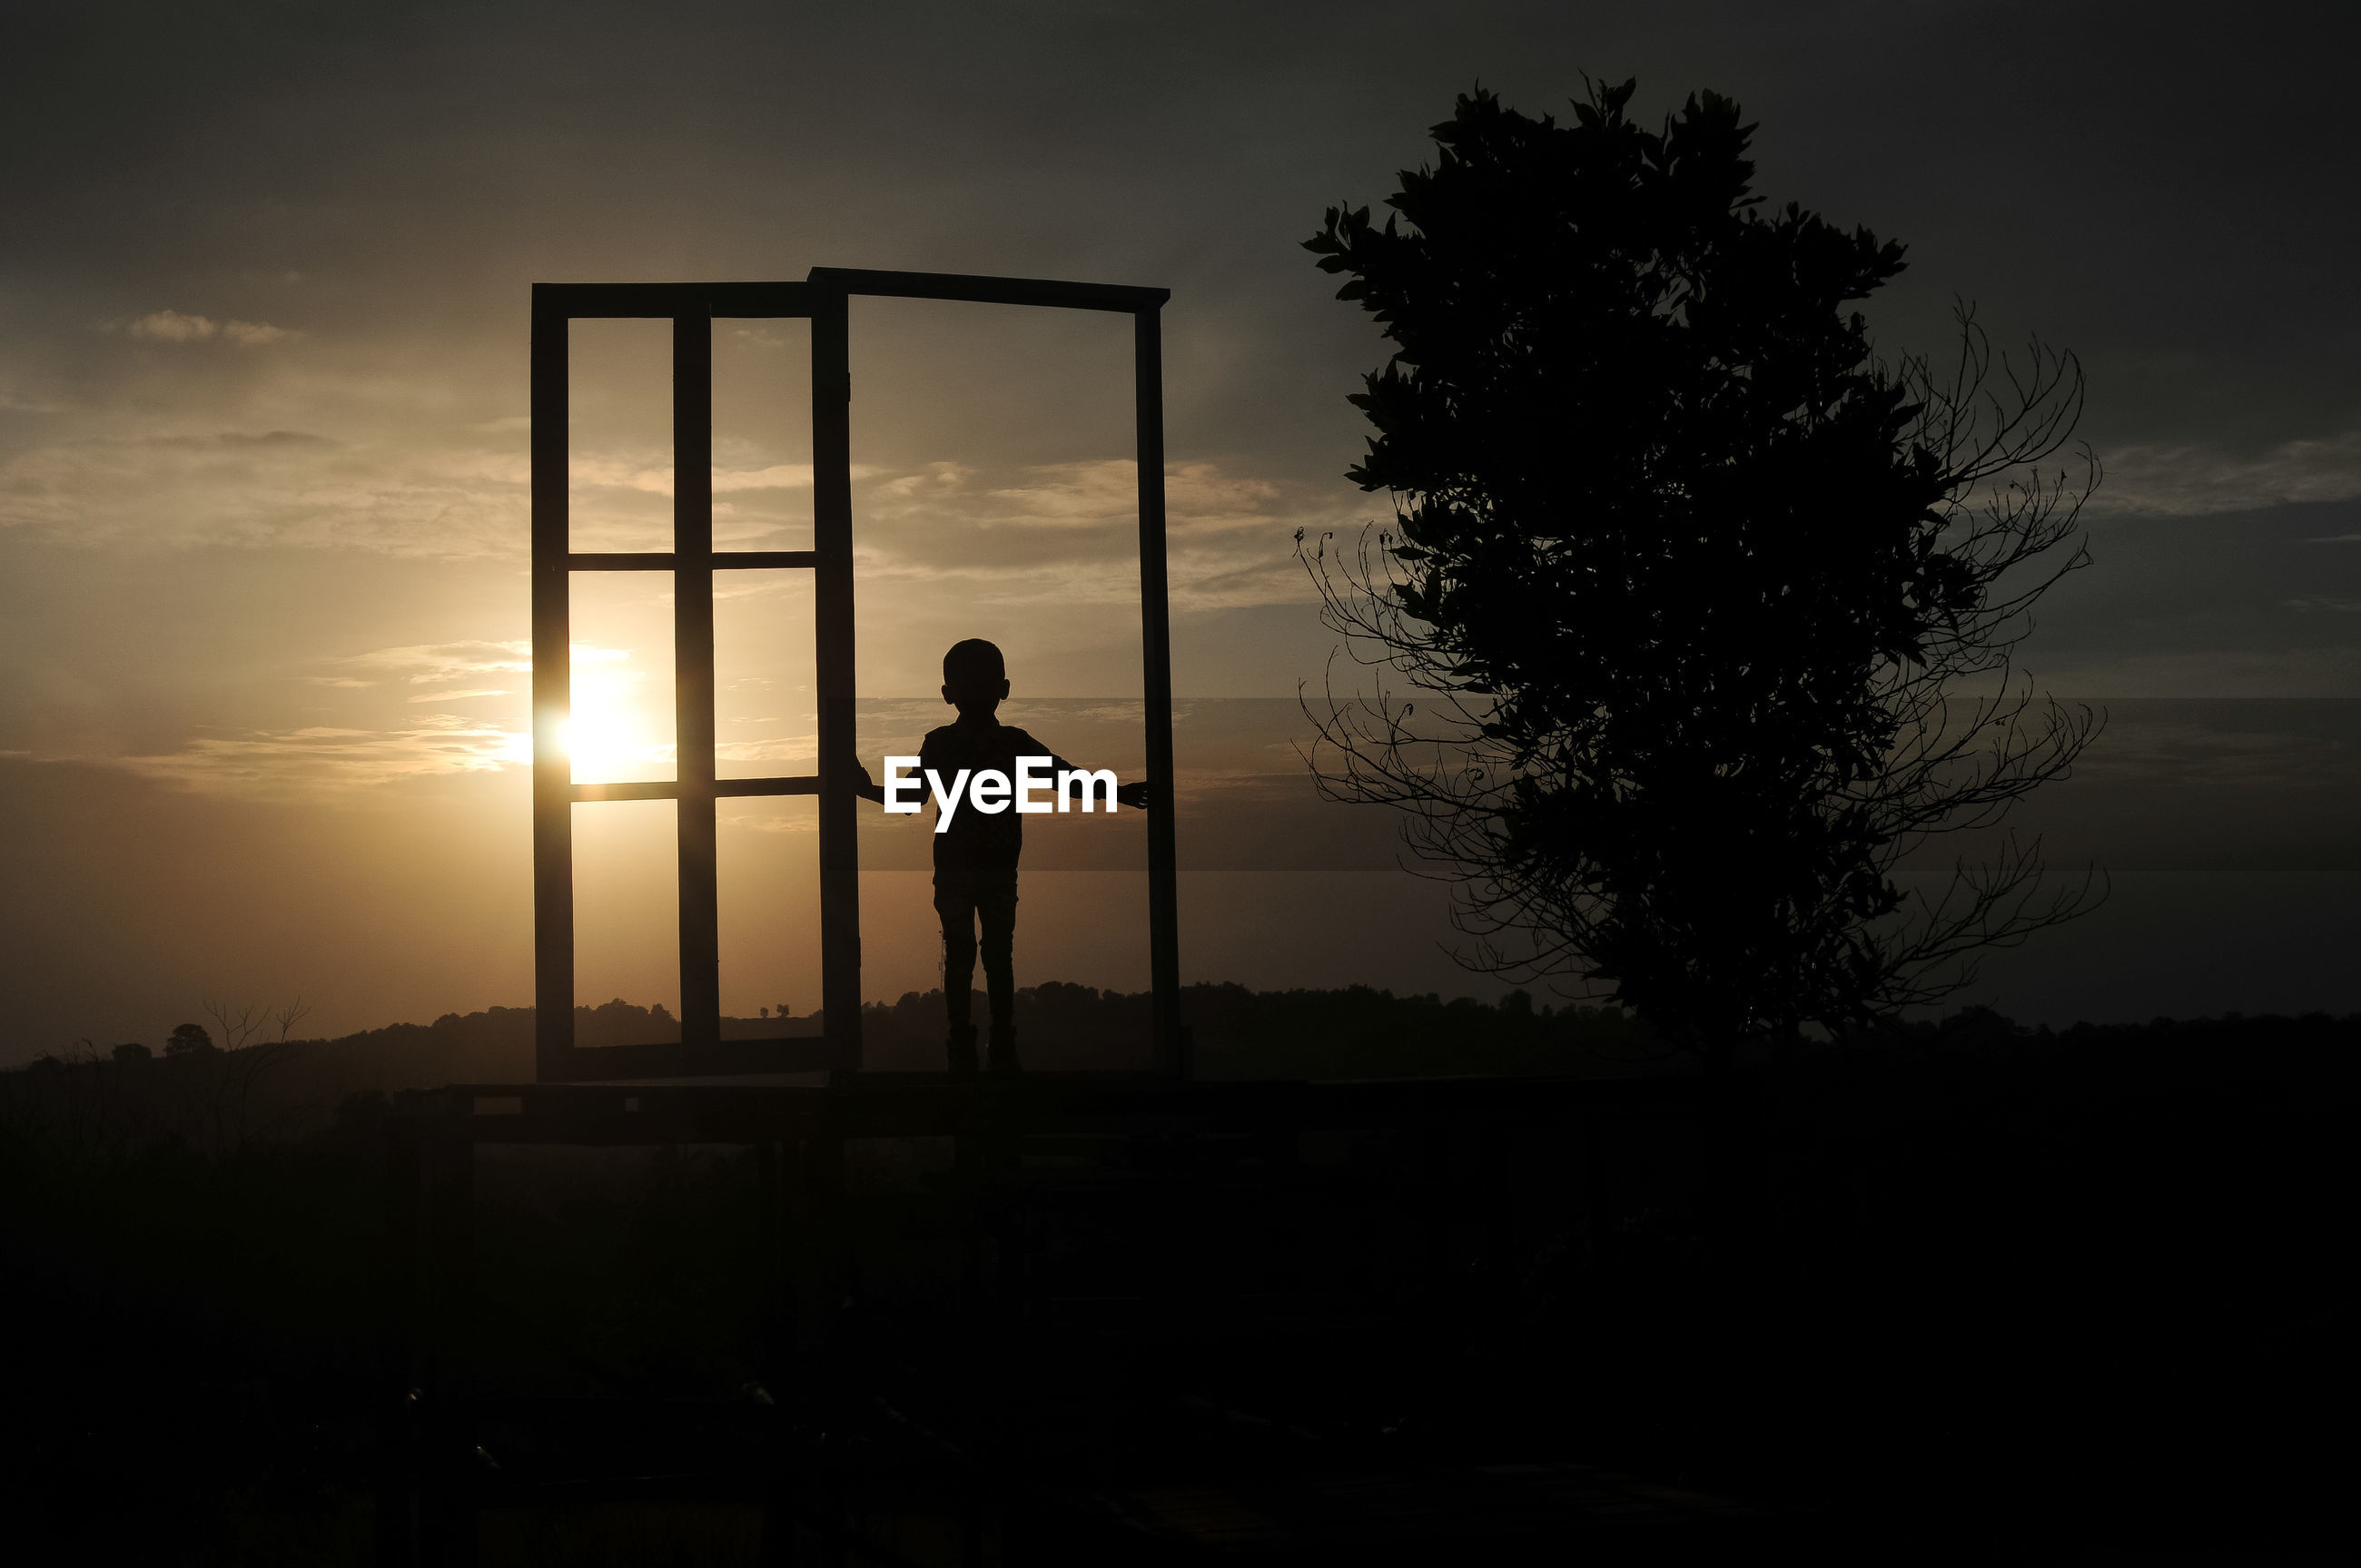 Silhouette boy walking at gate on field against sky during sunset